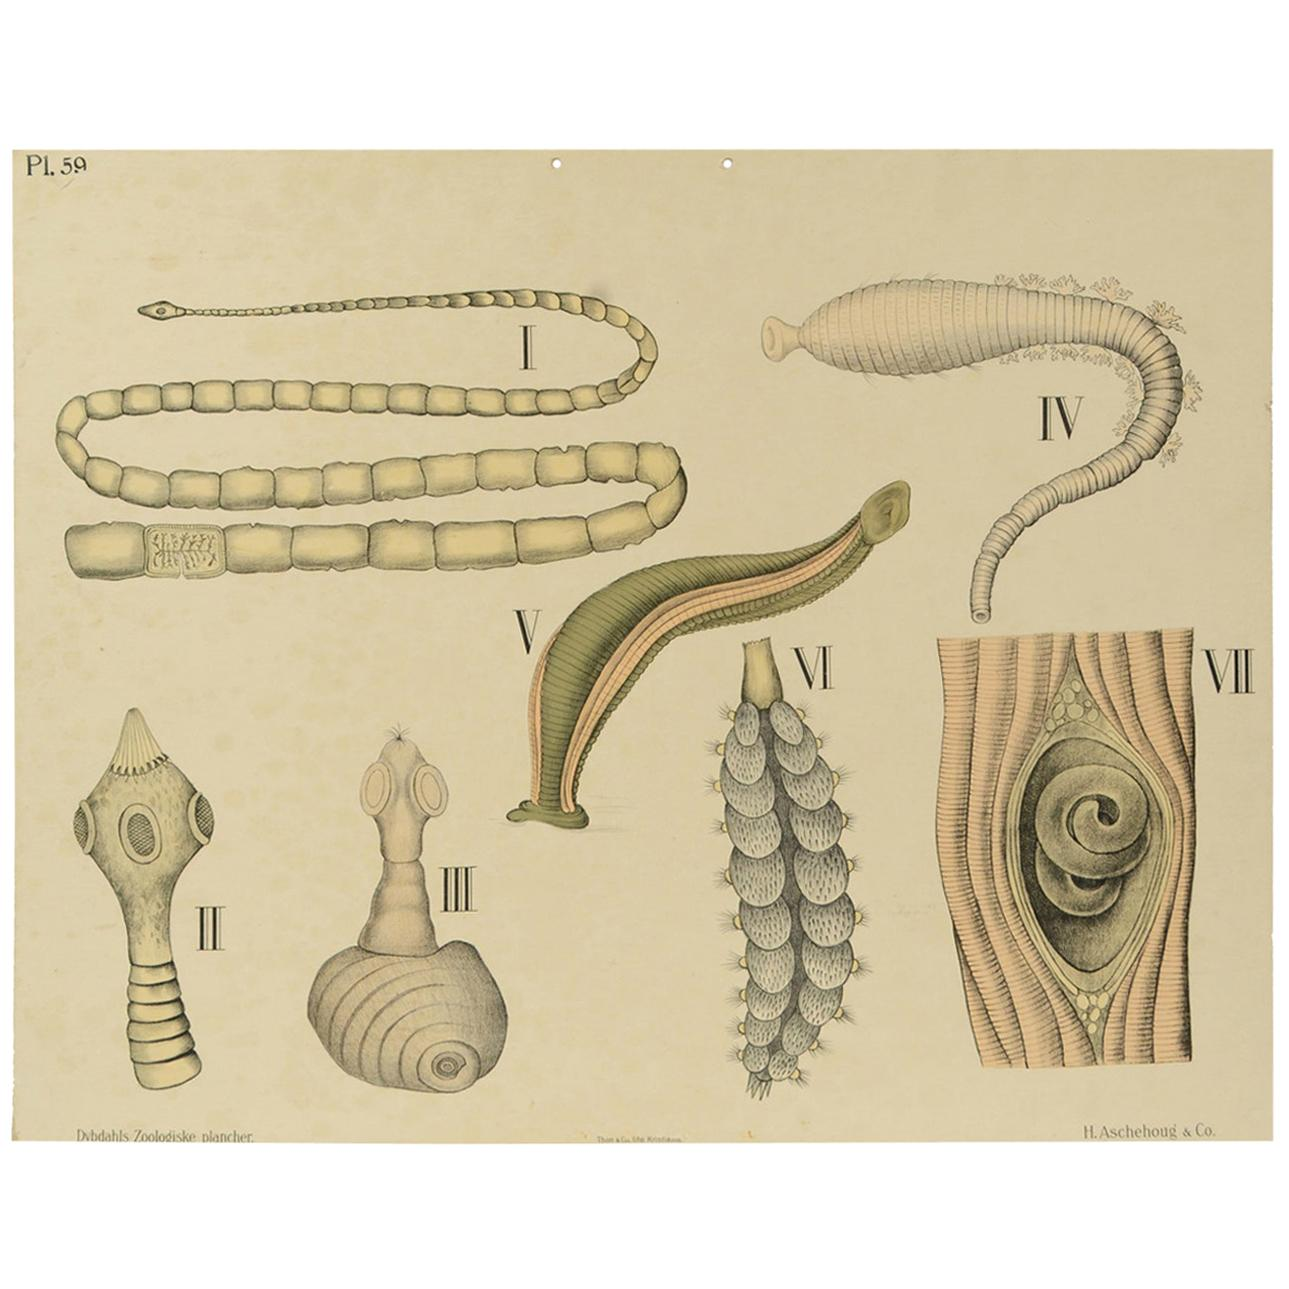 Zoological Lithograph of worm organs 1925 Cardboard by H Aschehoug & Co Norway